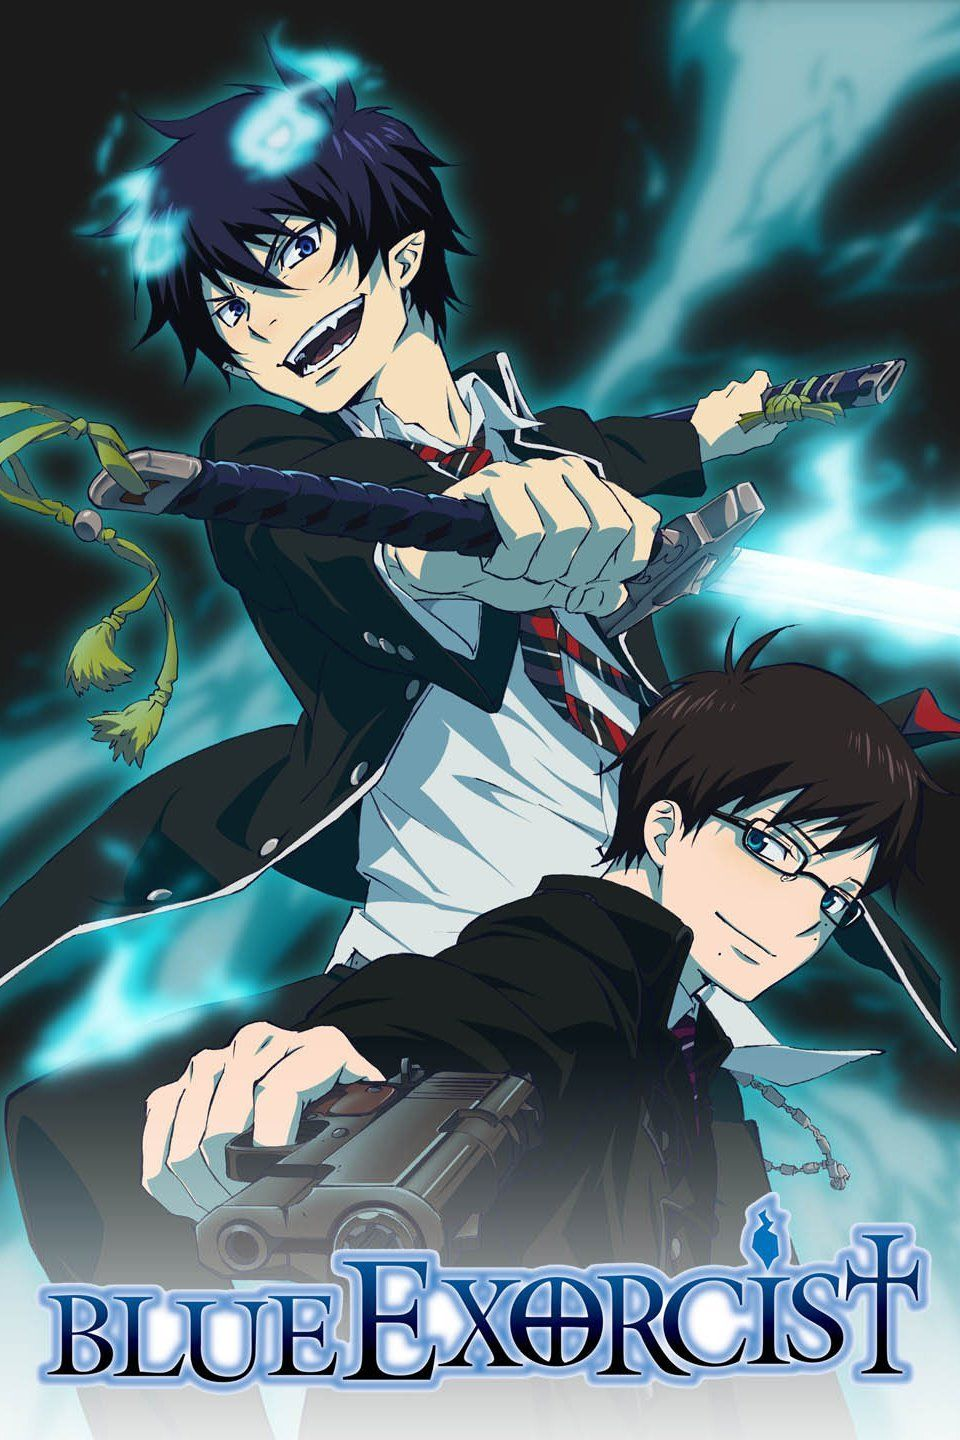 Blue Exorcist Blue exorcist anime, Anime shows, Exorcist